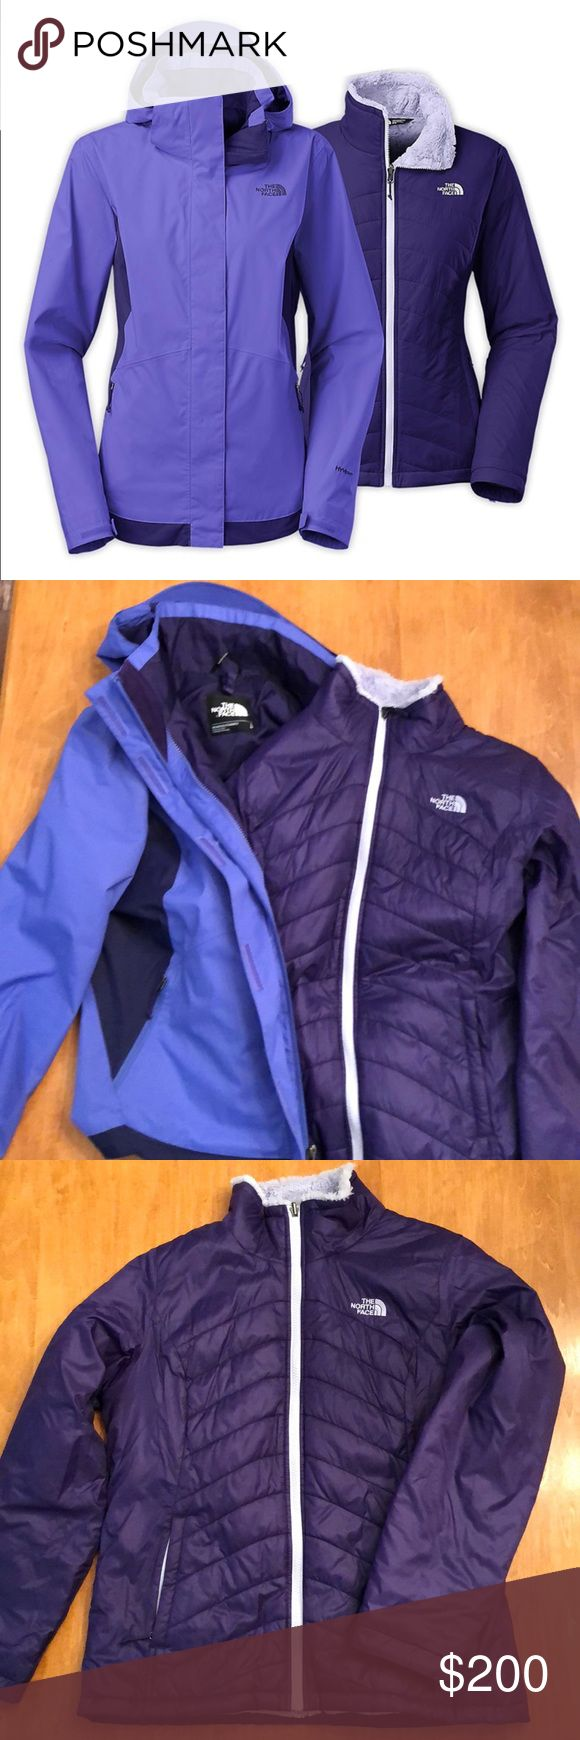 The North Face 3-in-1 ski winter snowboard jacket EUC. The North Face Mossbud Swirl Triclimate parka. Beautiful 3-in-1 ski, winter, or snowboard jacket. Size L. Warmest jacket. Like new. Pet free, smoke free home. North Face Jackets & Coats